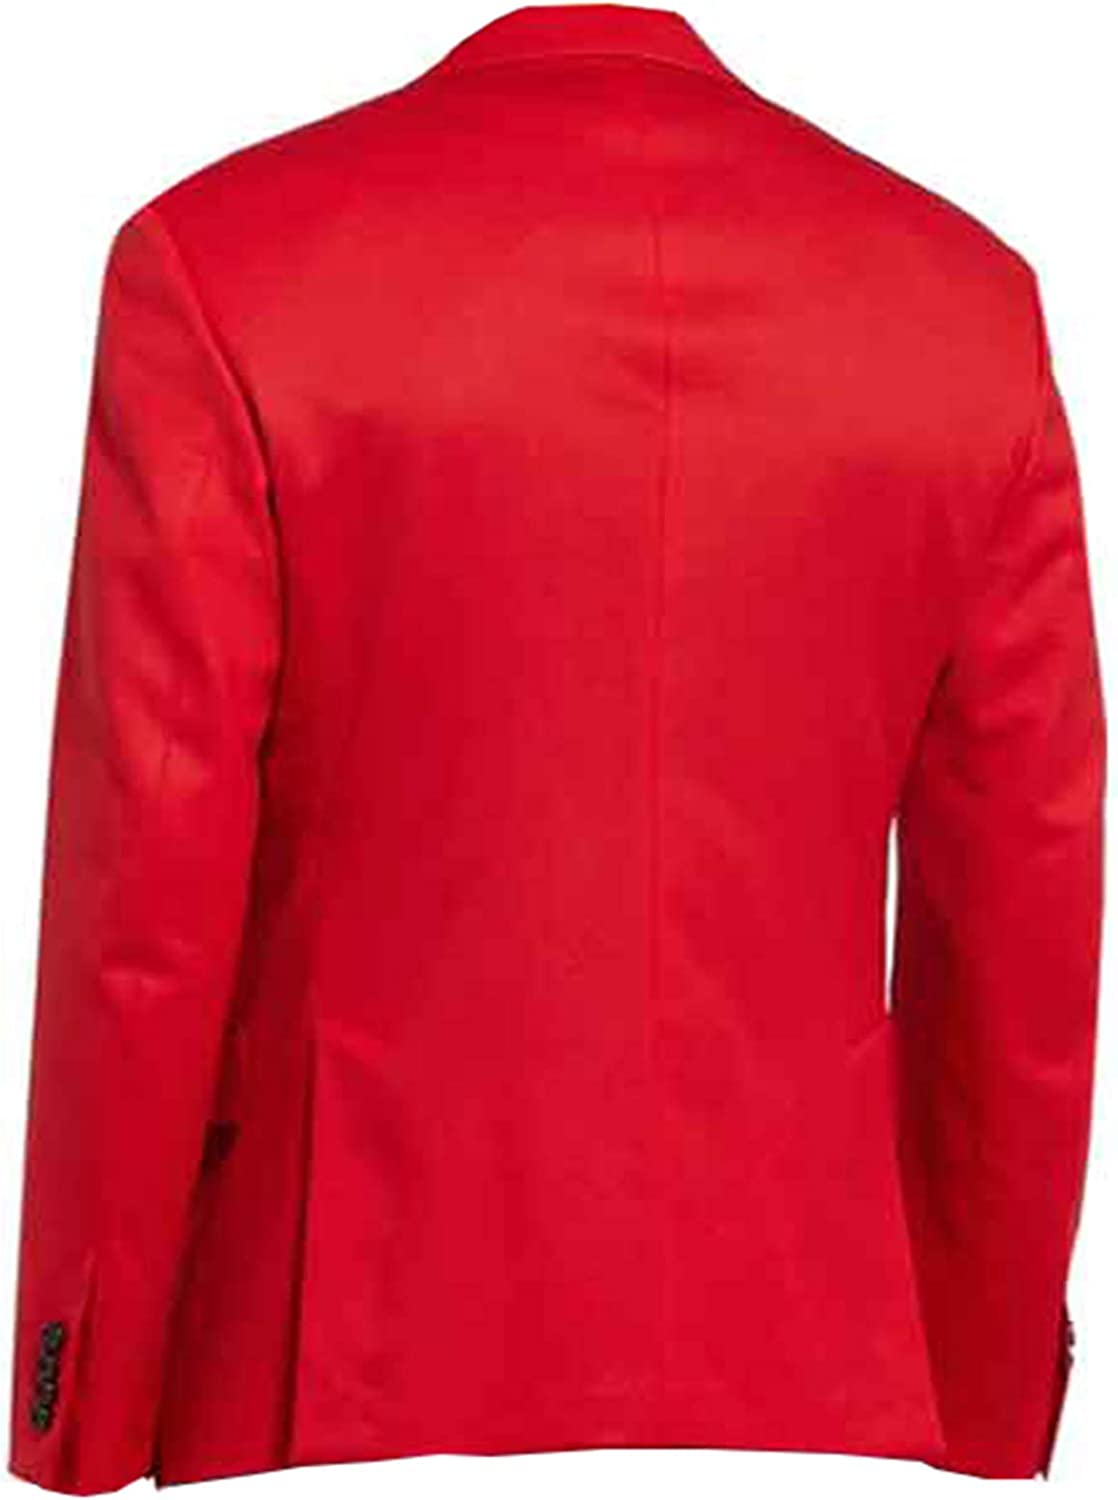 STB-Fashions The Weeknd Blinding Lights Red Suit Blazer Giacca Rosso/Cotone.